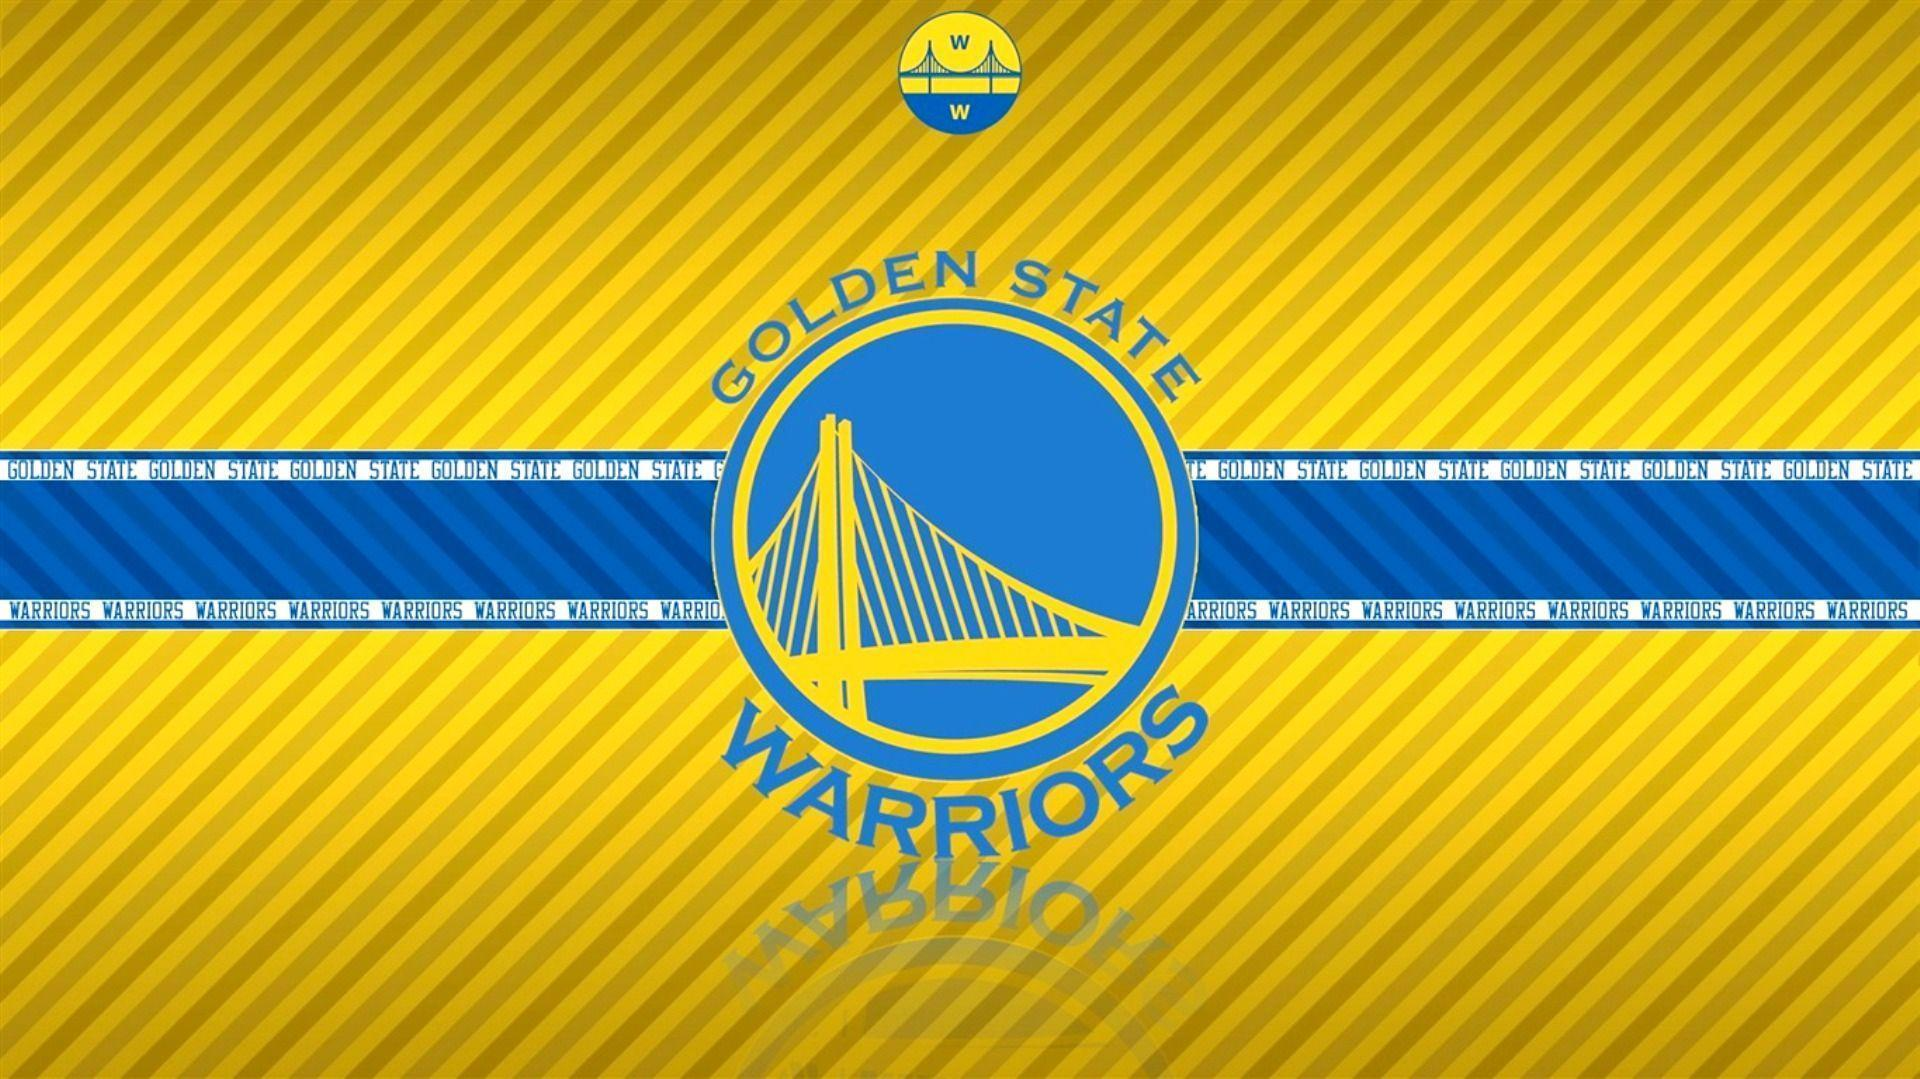 golden state warriors wallpaper full hd